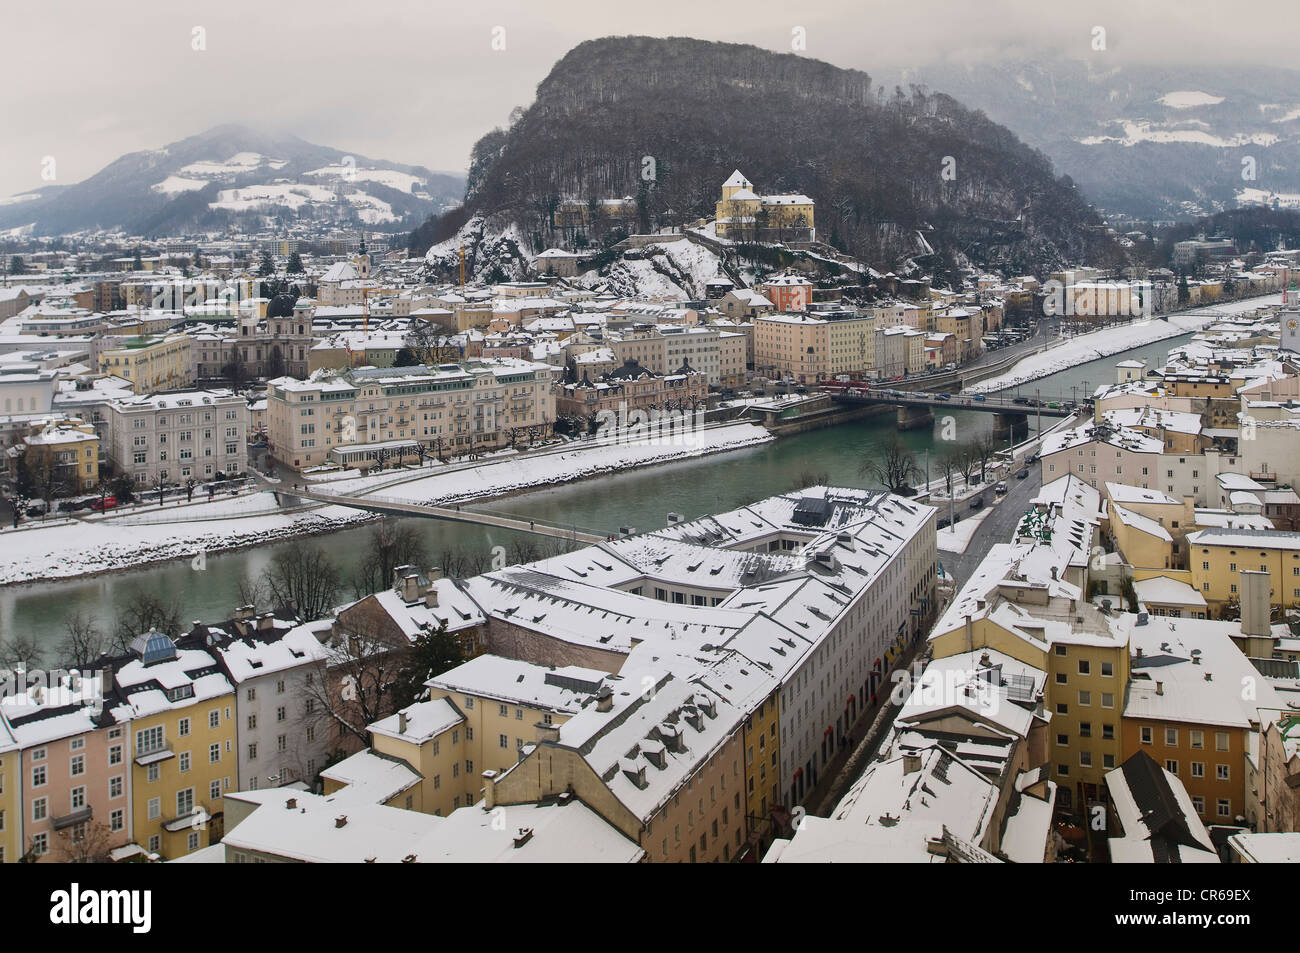 View from Moenchsberg Mountain over the wintry right bank of the Salzach towards Kapuzinerberg Mountain and Capuchin - Stock Image